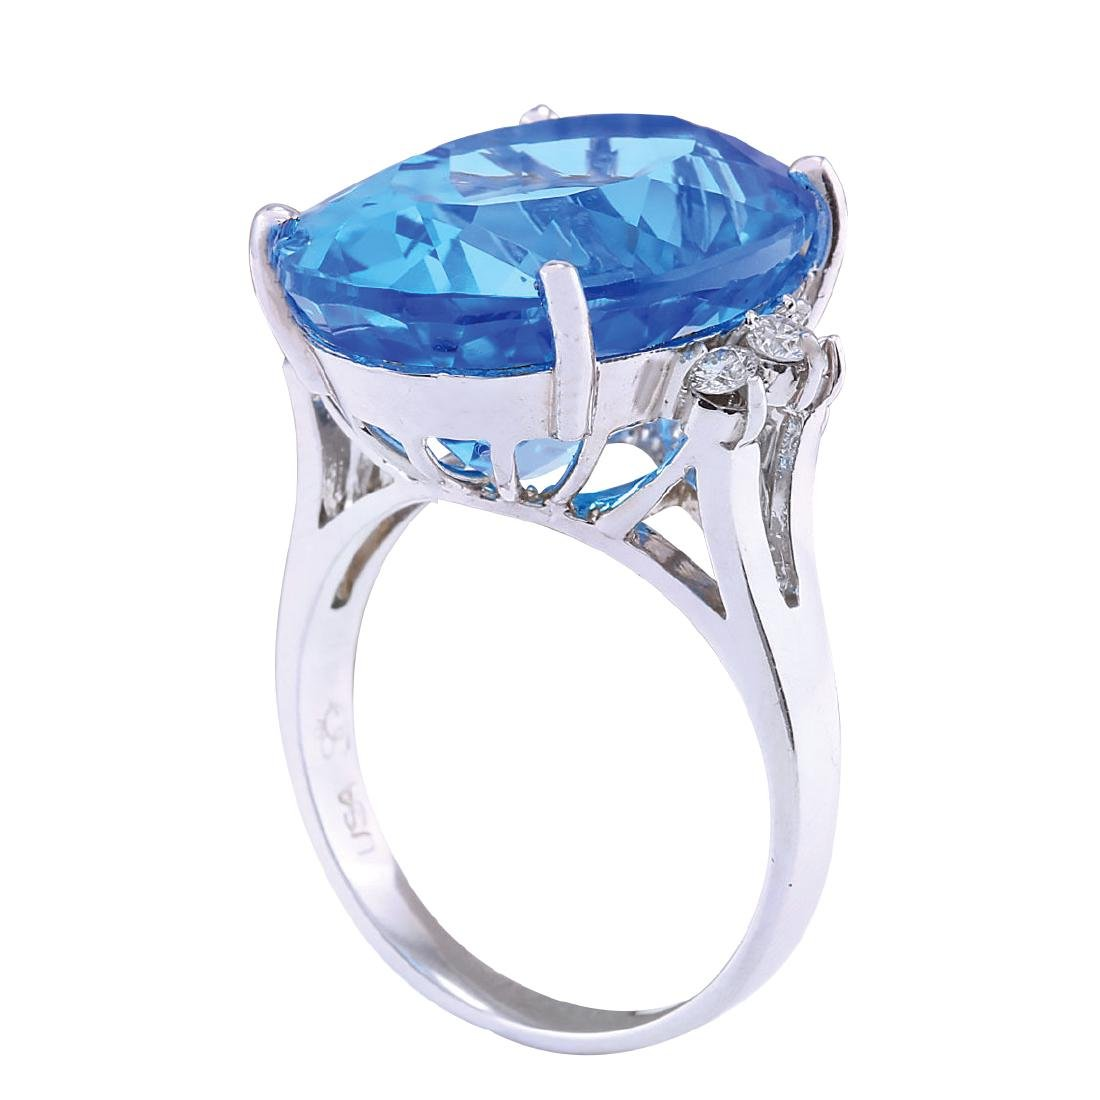 23.30CTW Natural Topaz And Diamond Ring In 18K White - 3